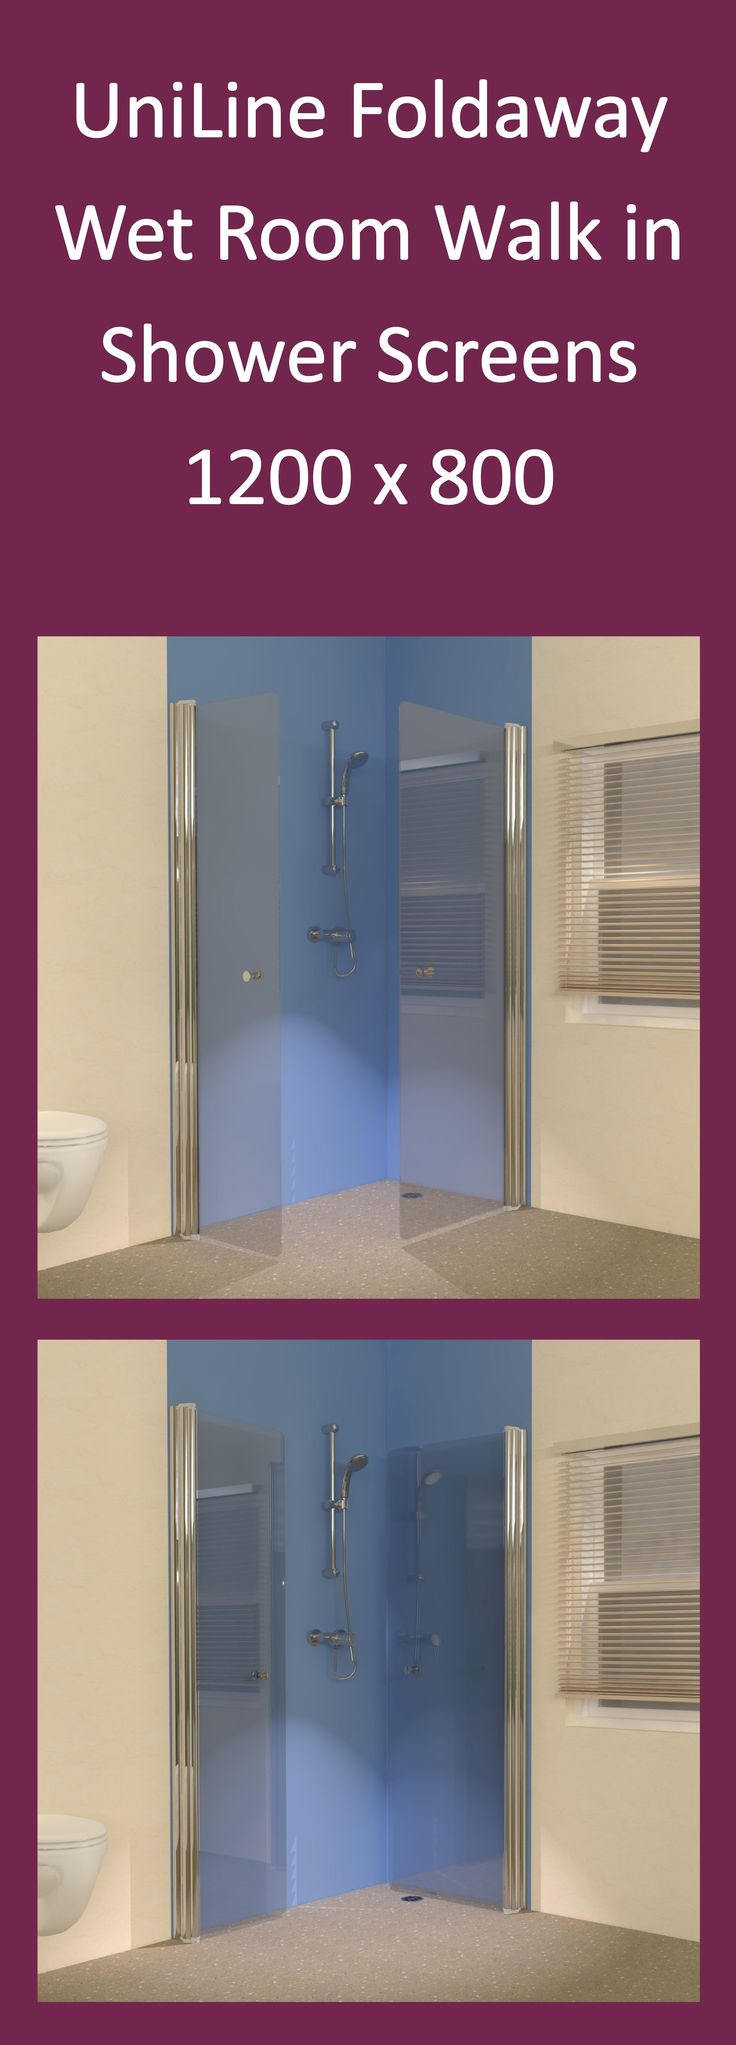 Foldaway Walk in Showers for Wet Rooms. See more.... http://www.unishower.co.uk/wet-room-shower-screens.html